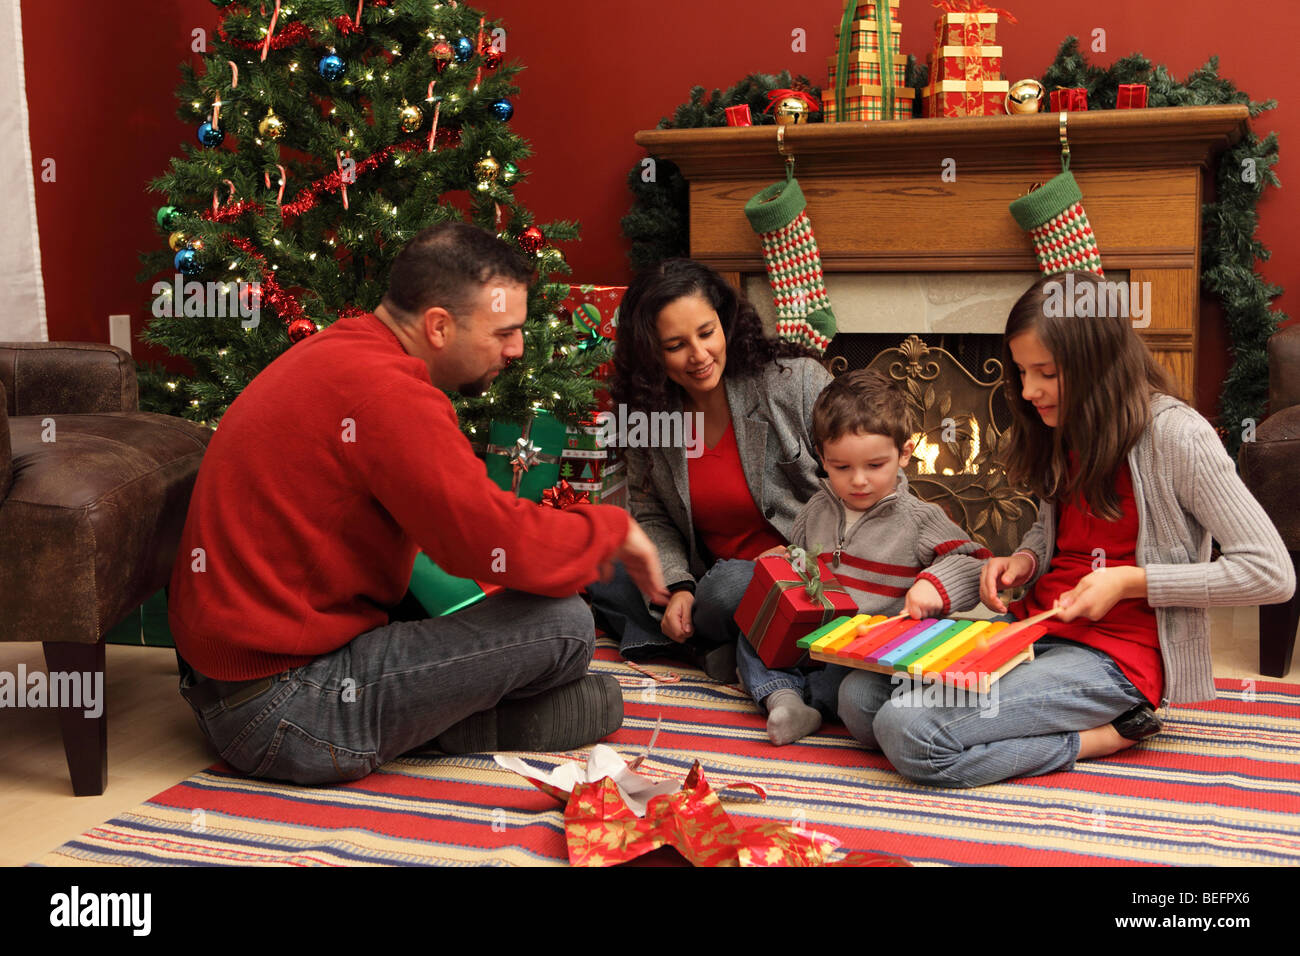 Family opening presents by Christmas tree - Stock Image